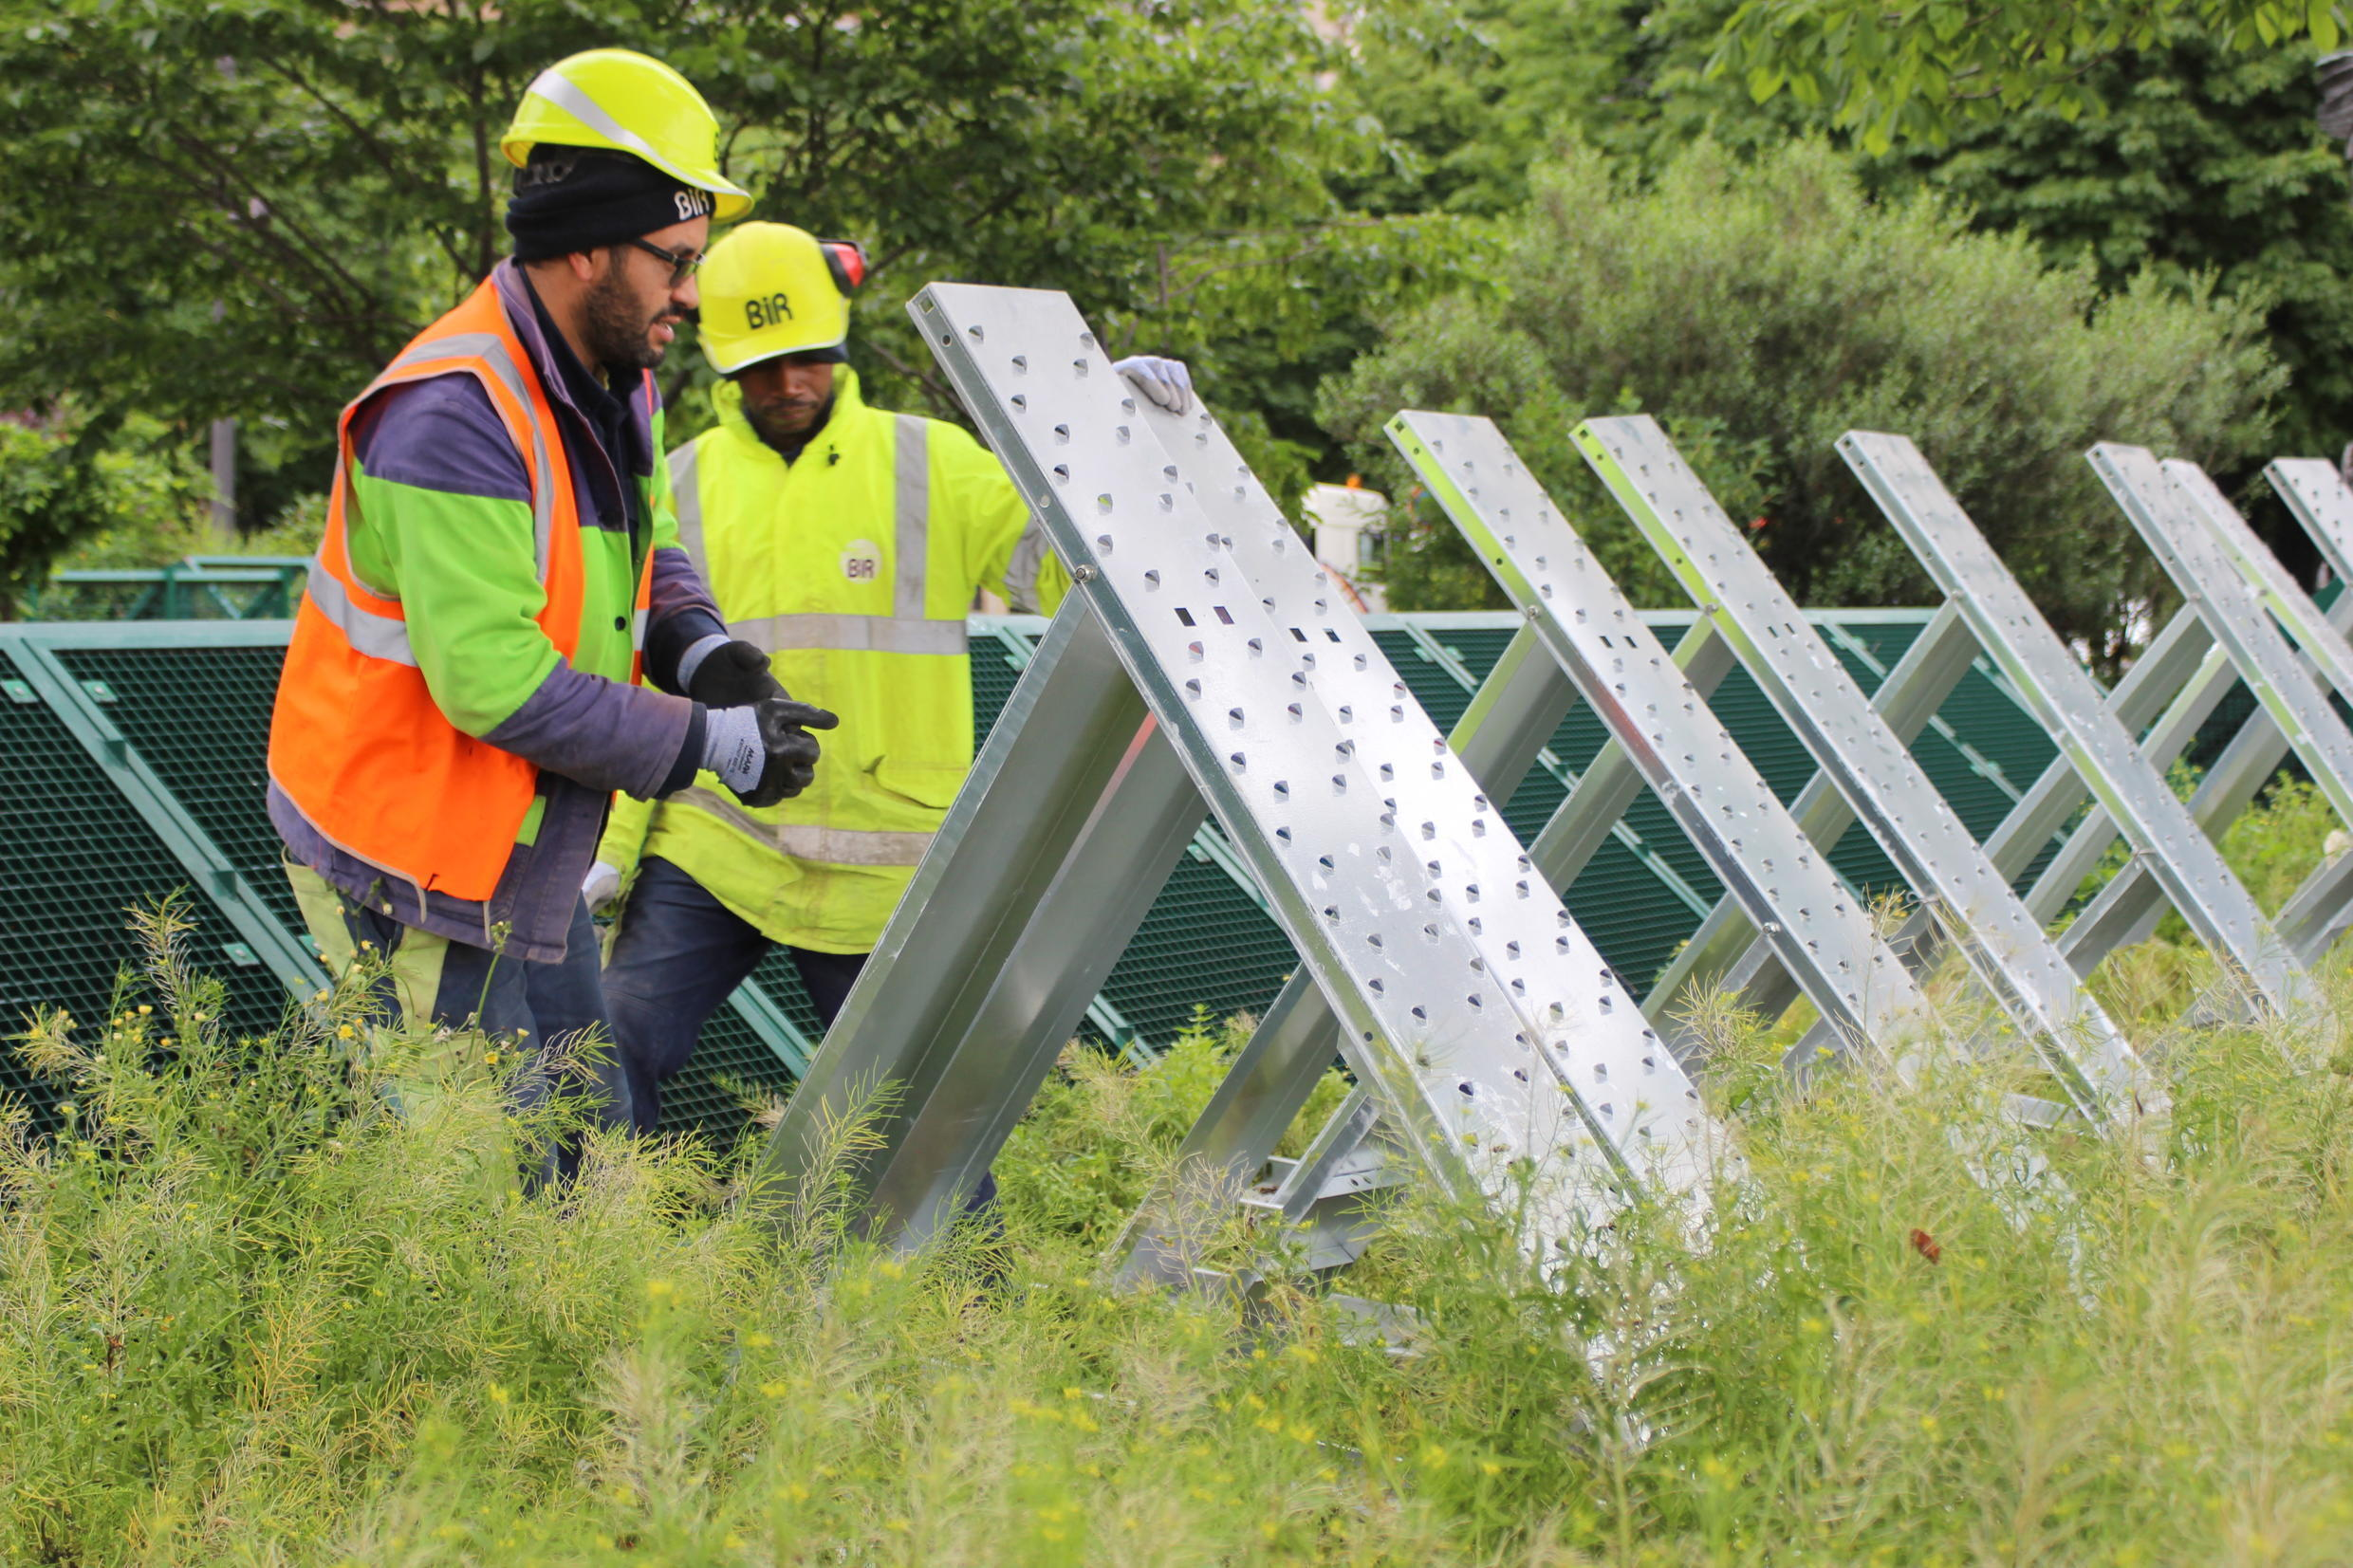 Workers rushed to set up anti-flood barriers to protect an electrical installation near Alma Bridge.